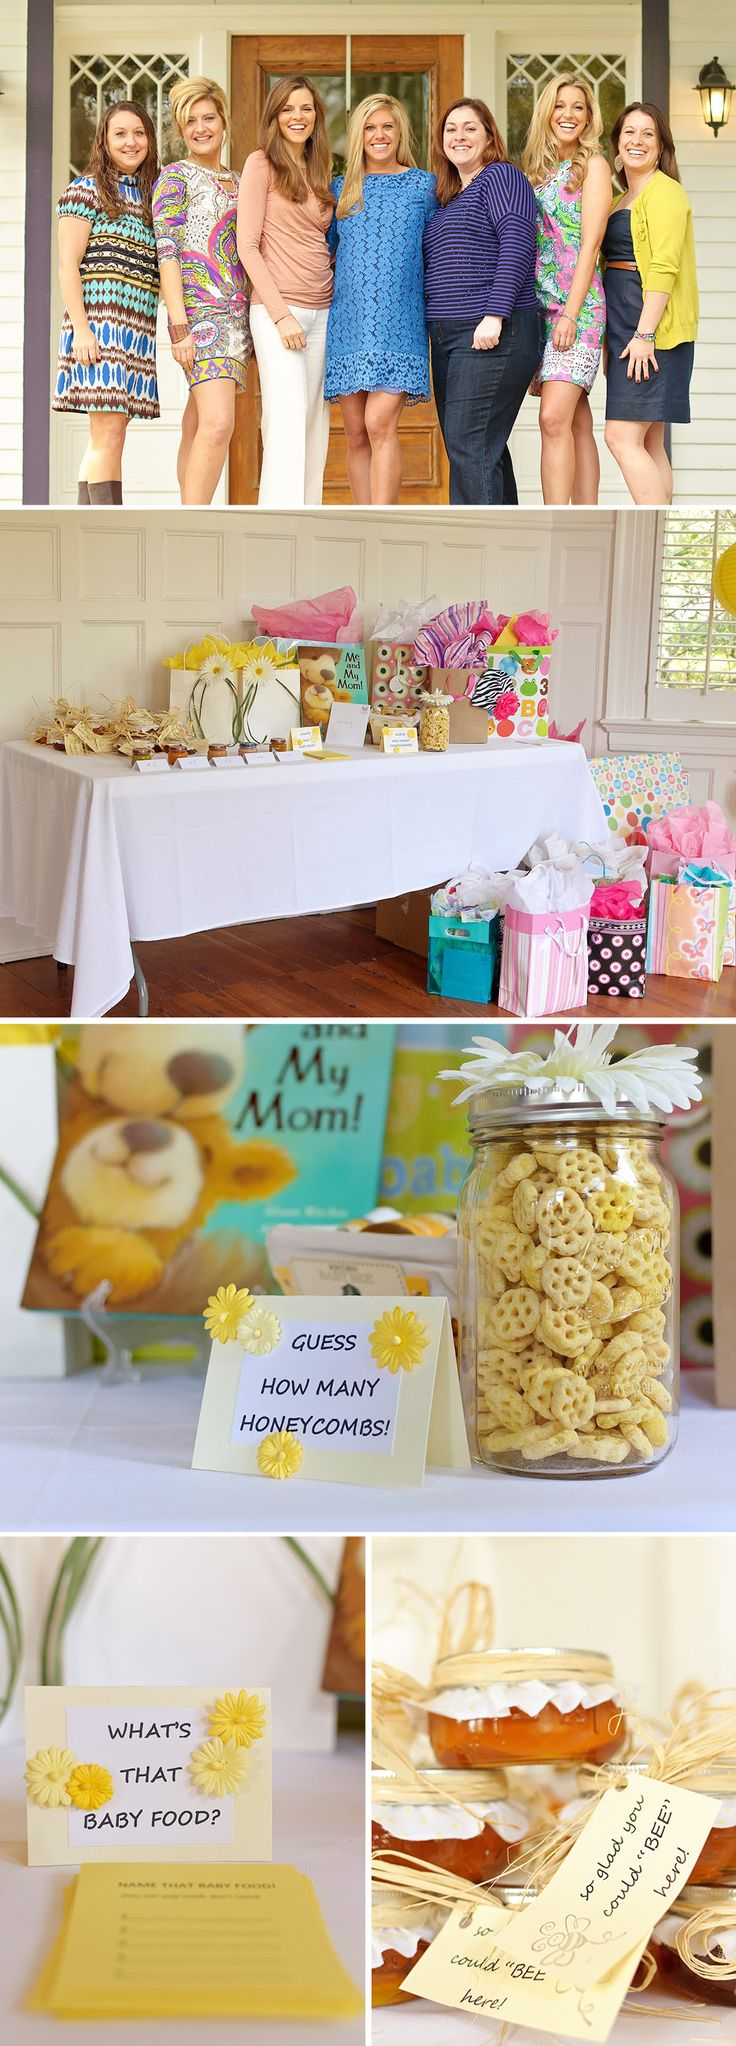 Bumblebee Themed Baby Shower - The Celebration Society